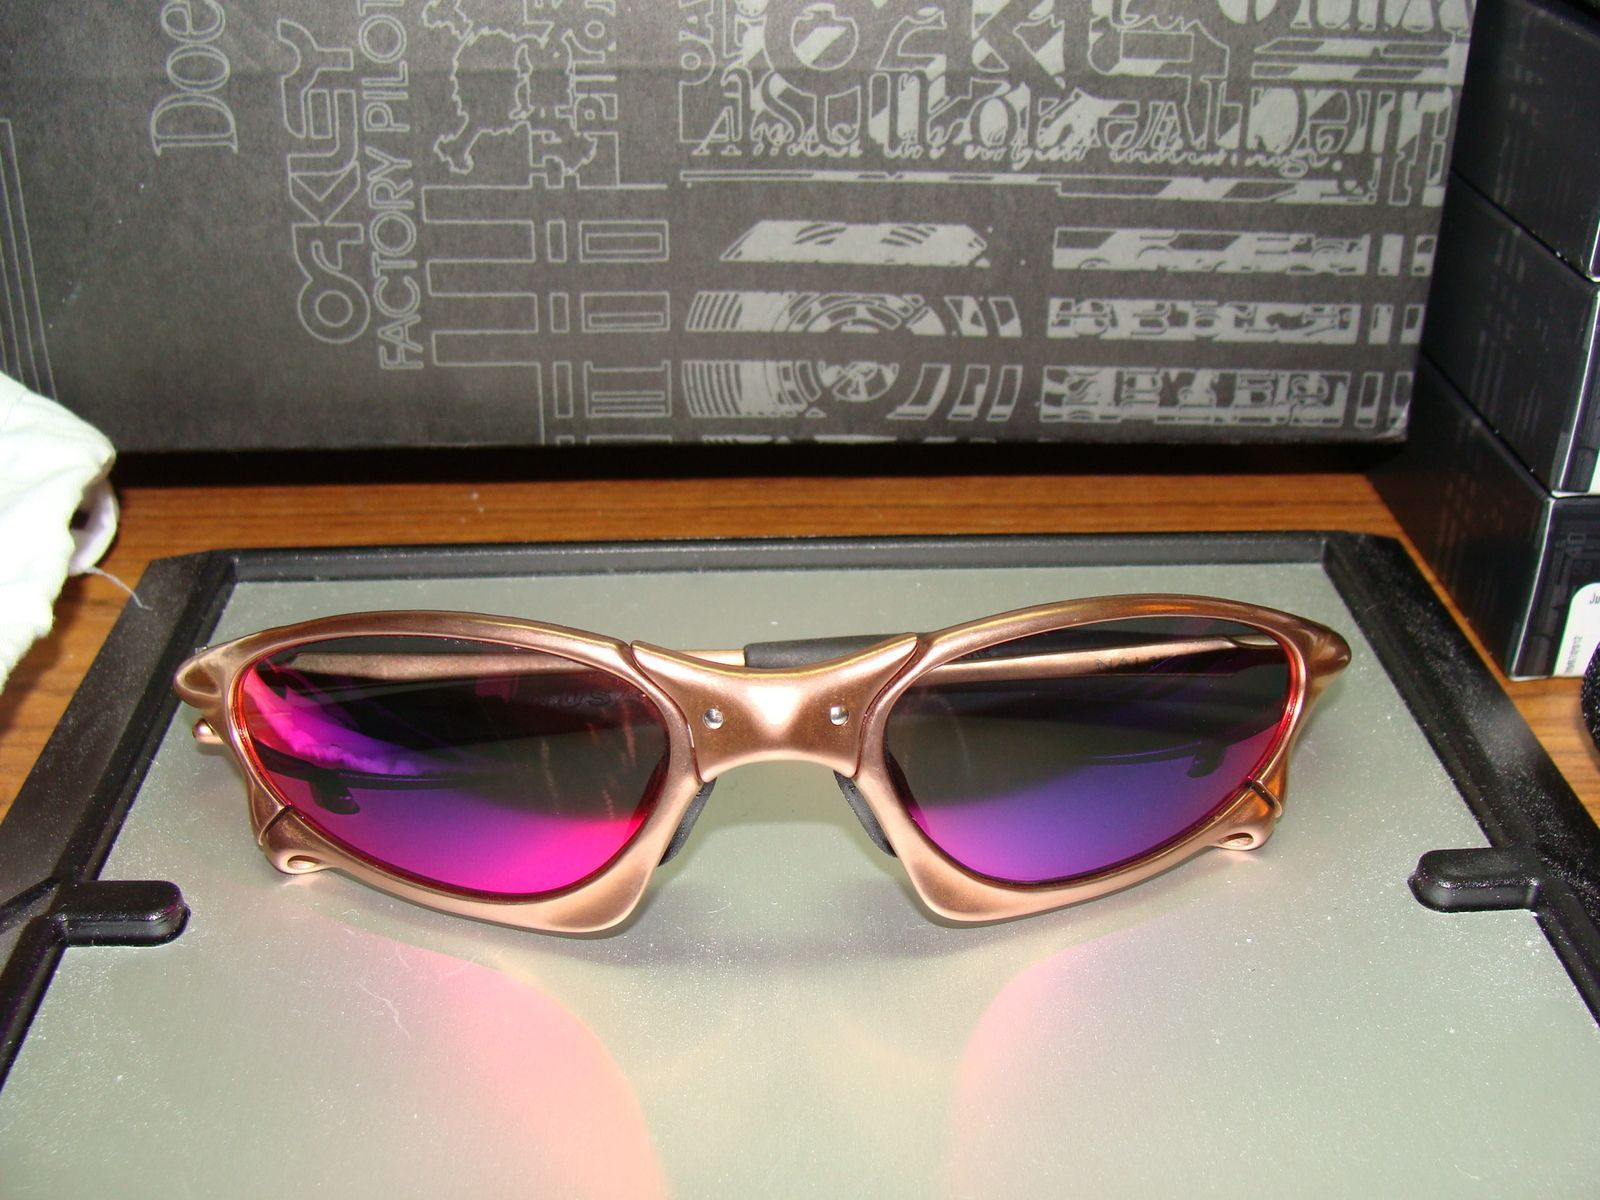 Custom Cut Pos Red Lenses For Penny (OEM Lenses) - dsc03592q.jpg